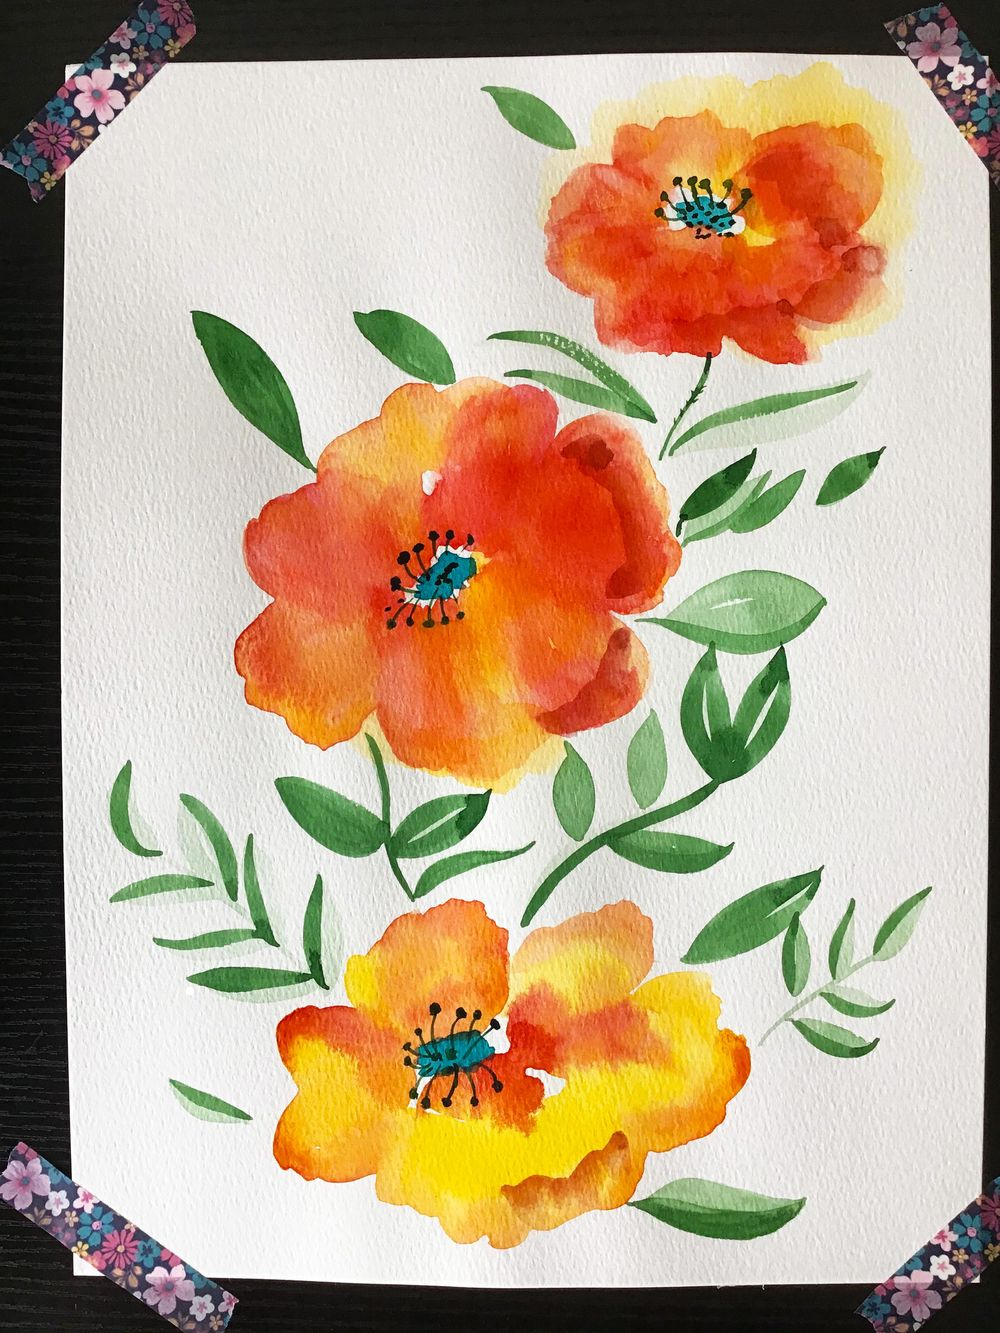 flowers and mushrooms from Anna Sokolova class - image 1 - student project